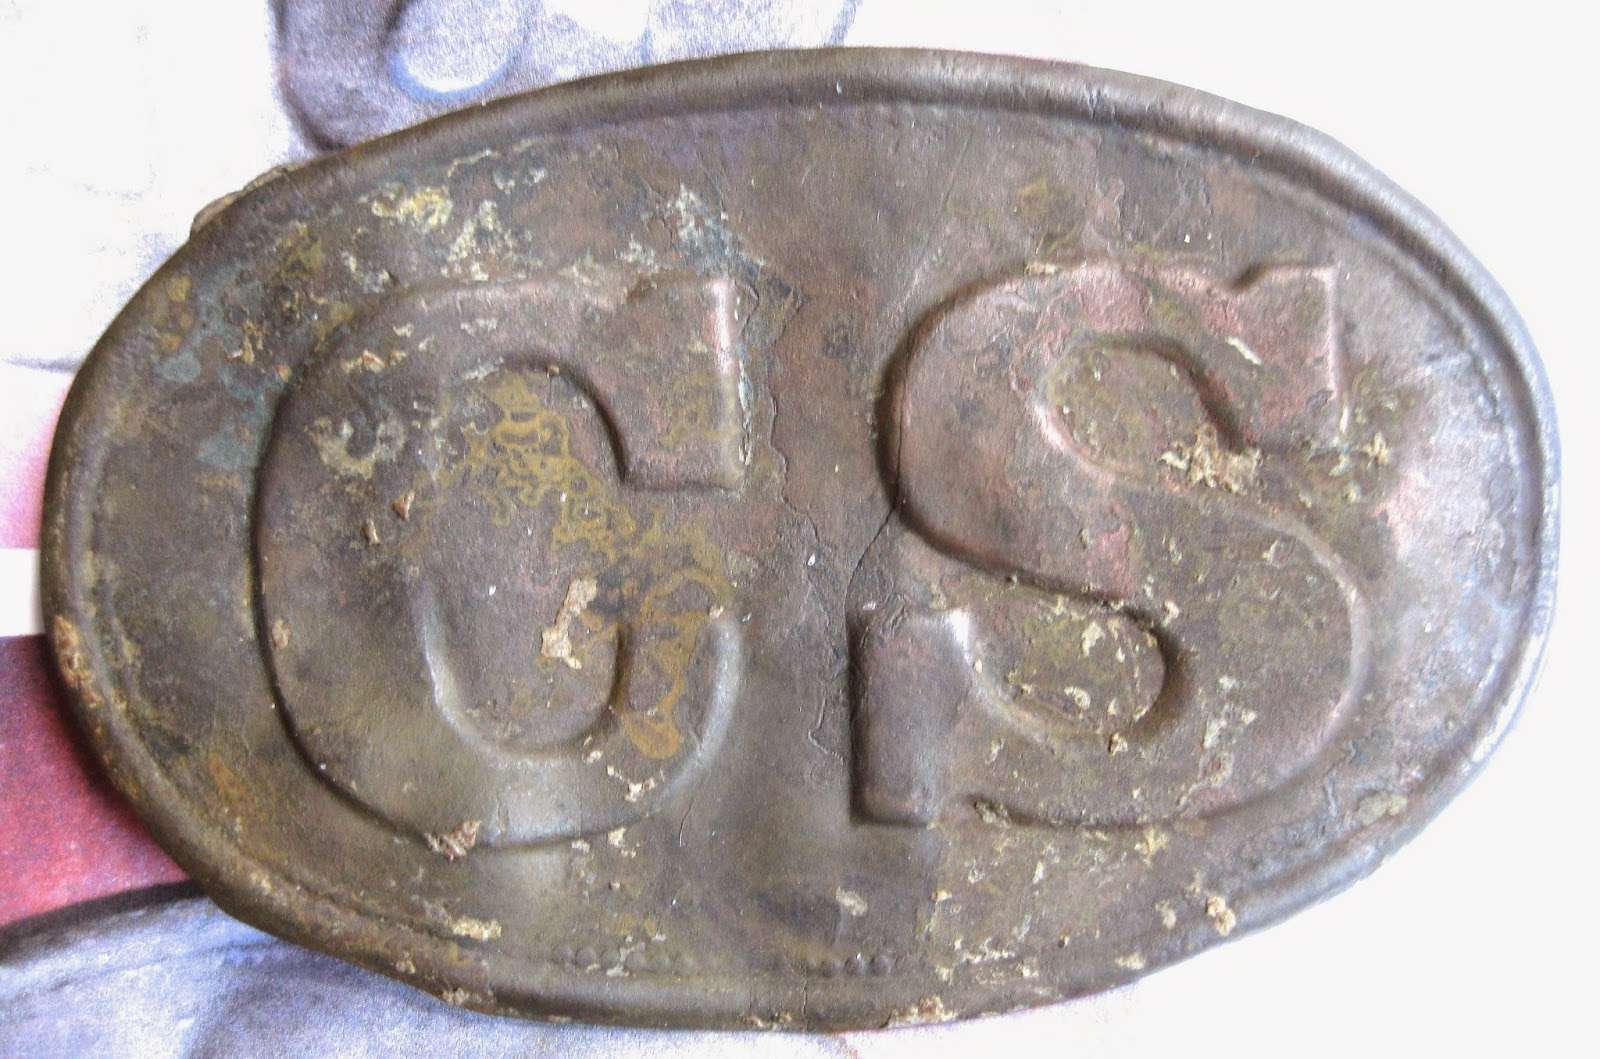 Beltsbuckles in addition Beltsbuckles likewise Civil War Buckles further Mexwar also Civil War Union And Confederate Waist. on csa cartridge box plates